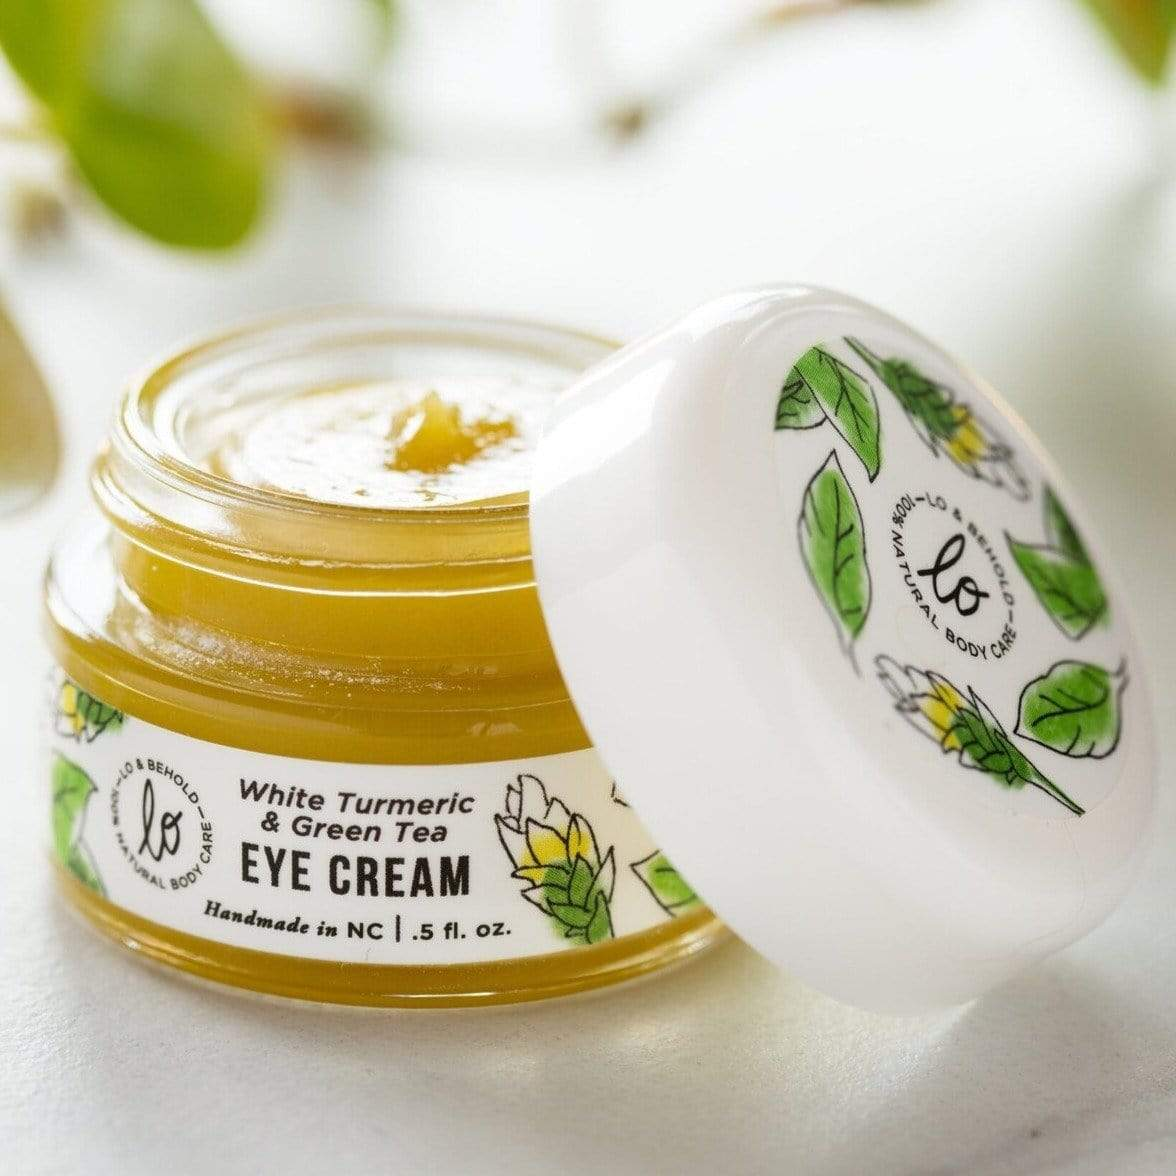 All Natural Soothing Eye Cream - Lo & Behold Naturals -Freehand Market